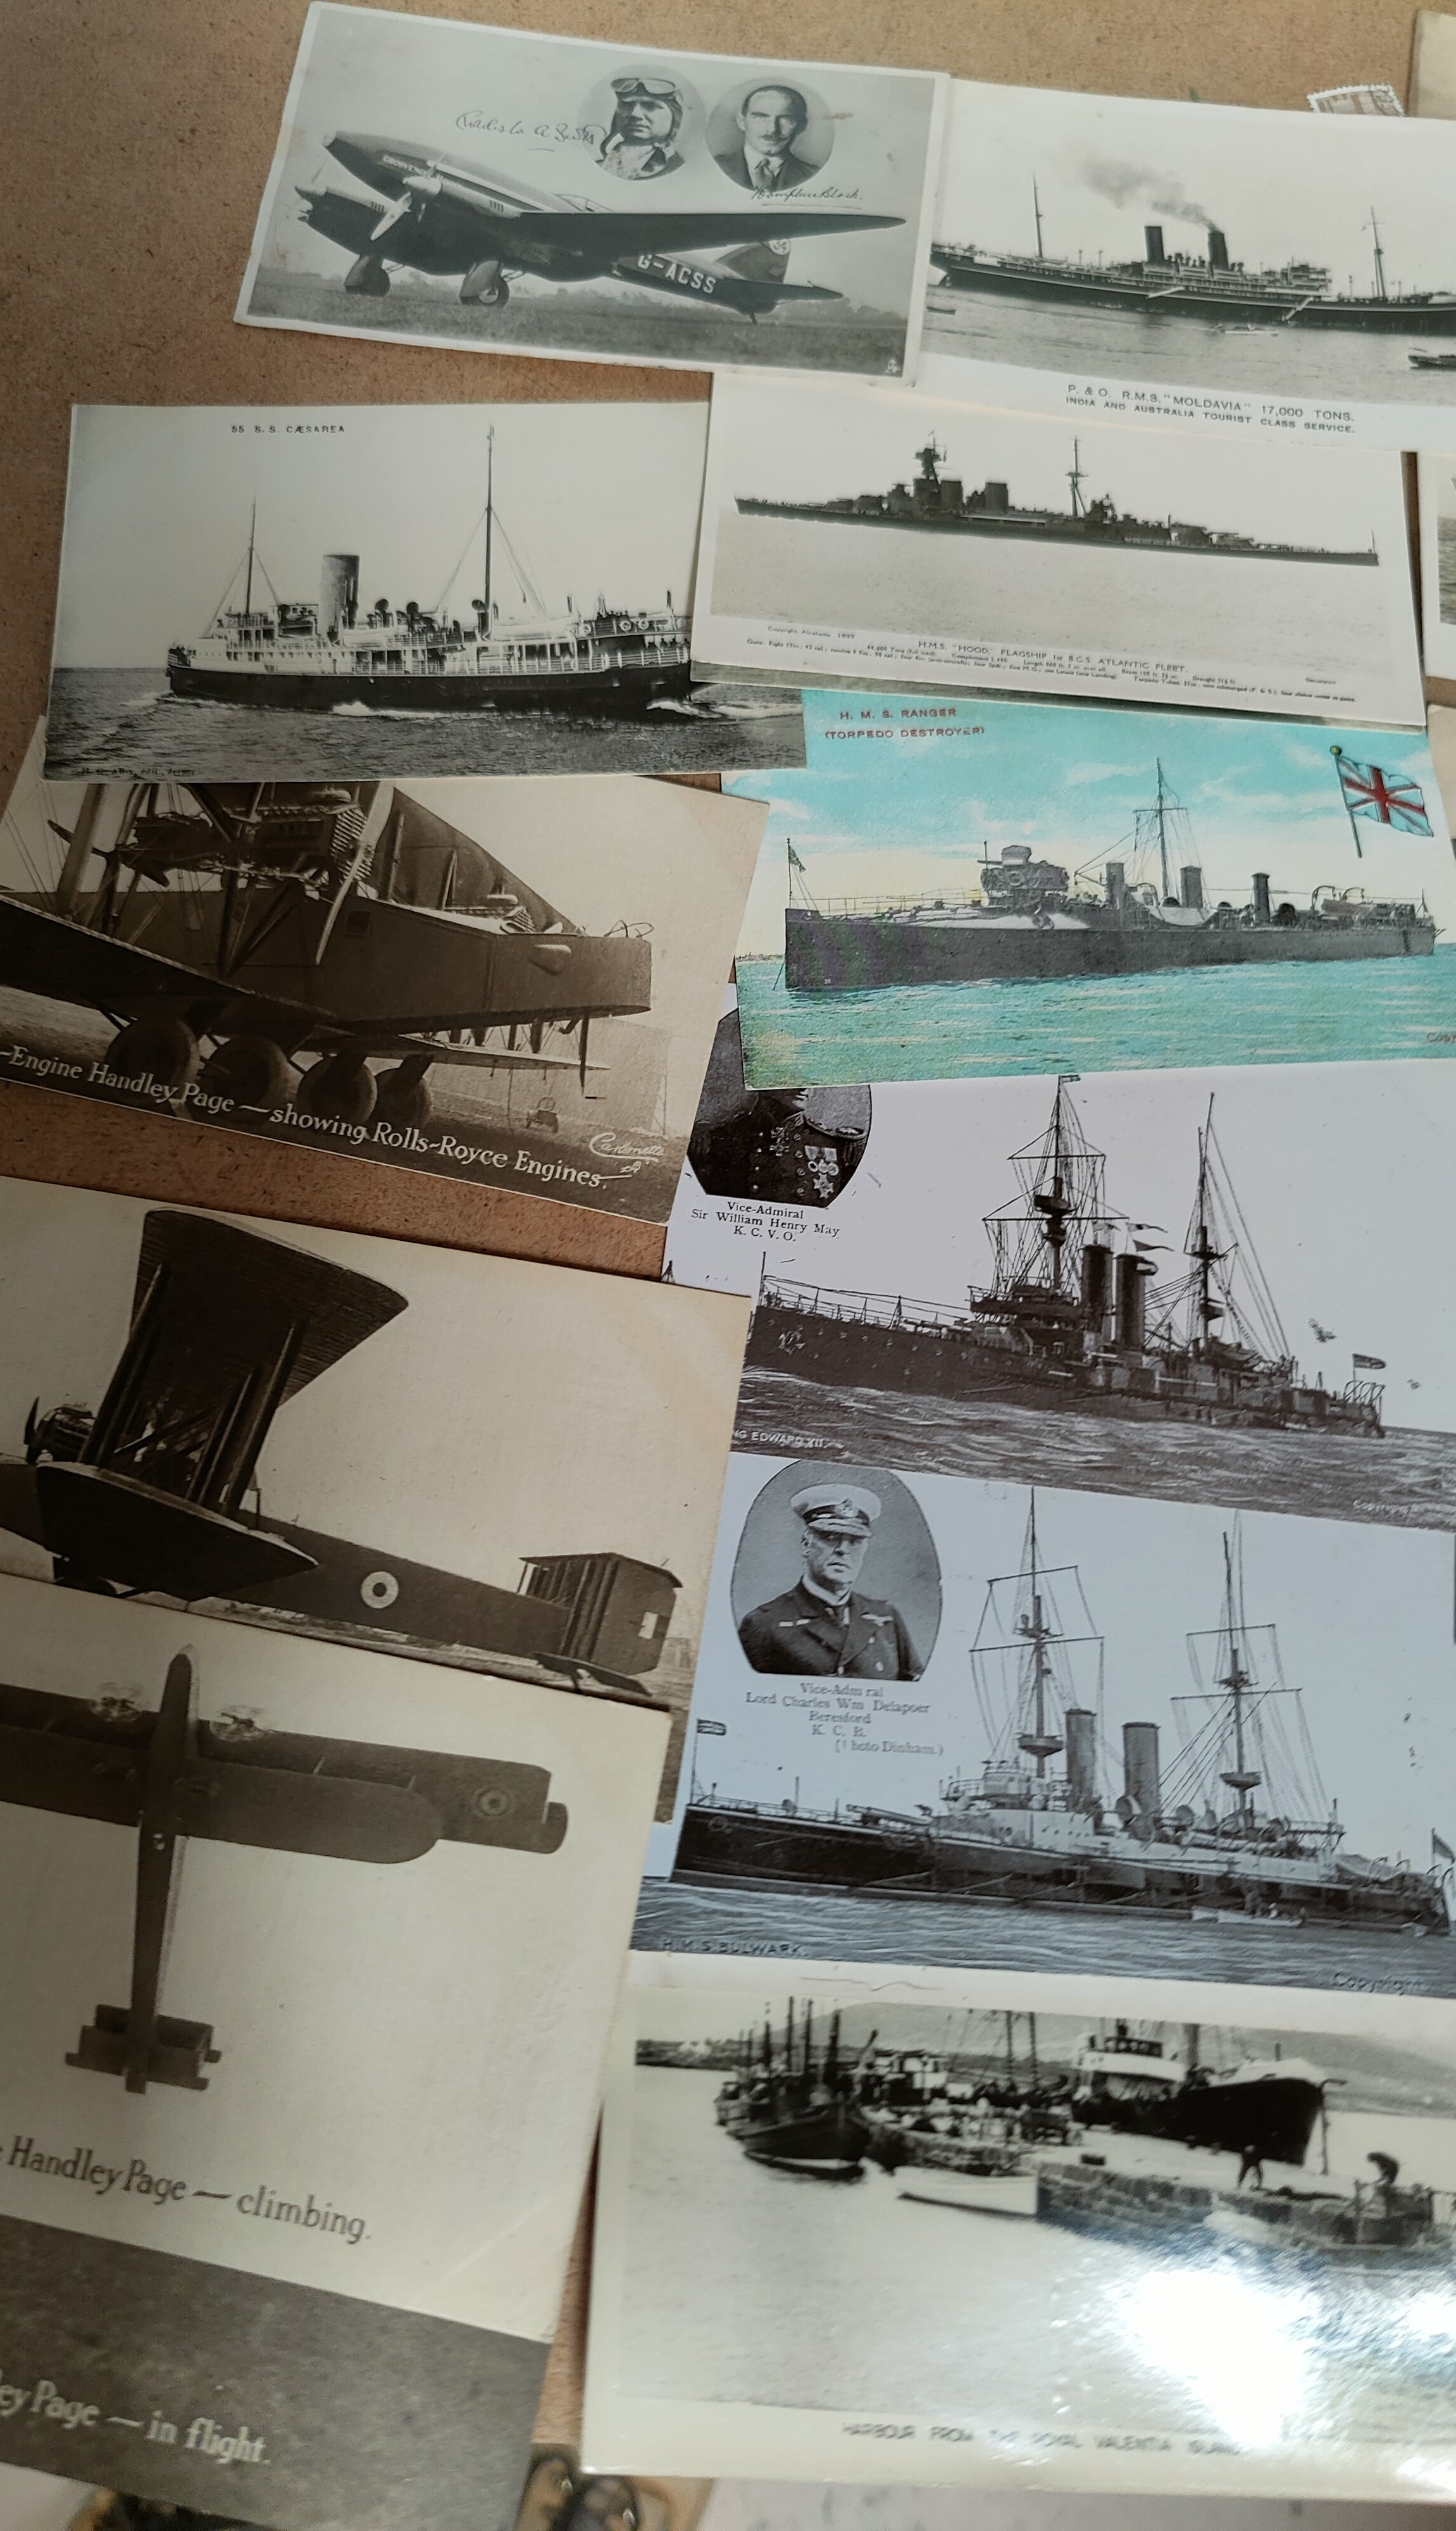 An RMS Titanic memorial postcard, other ships and 5 cards depicting Handley Page aircraft - Image 3 of 3